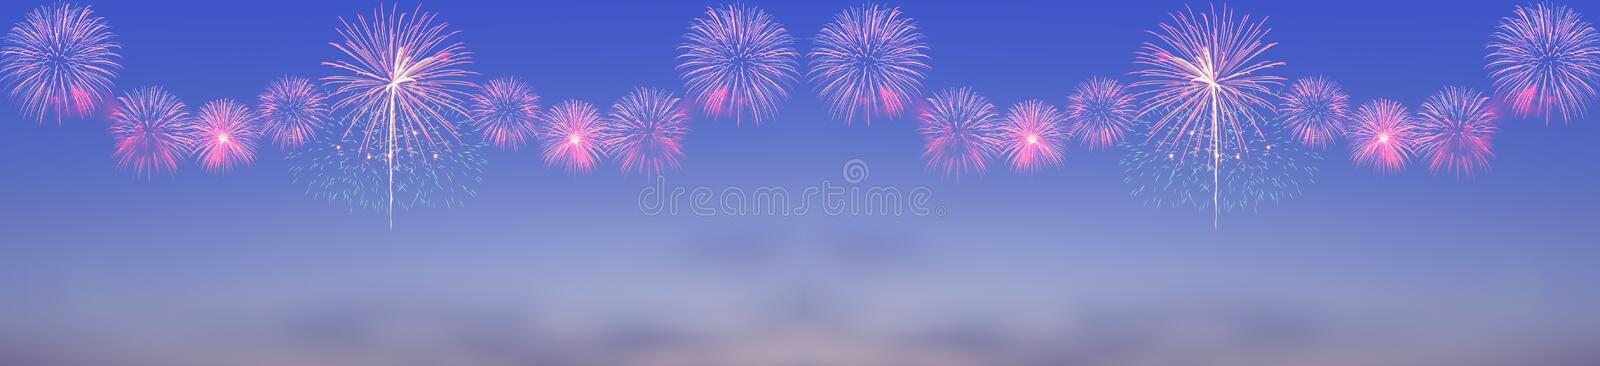 Fireworks on twilight sky stock photography